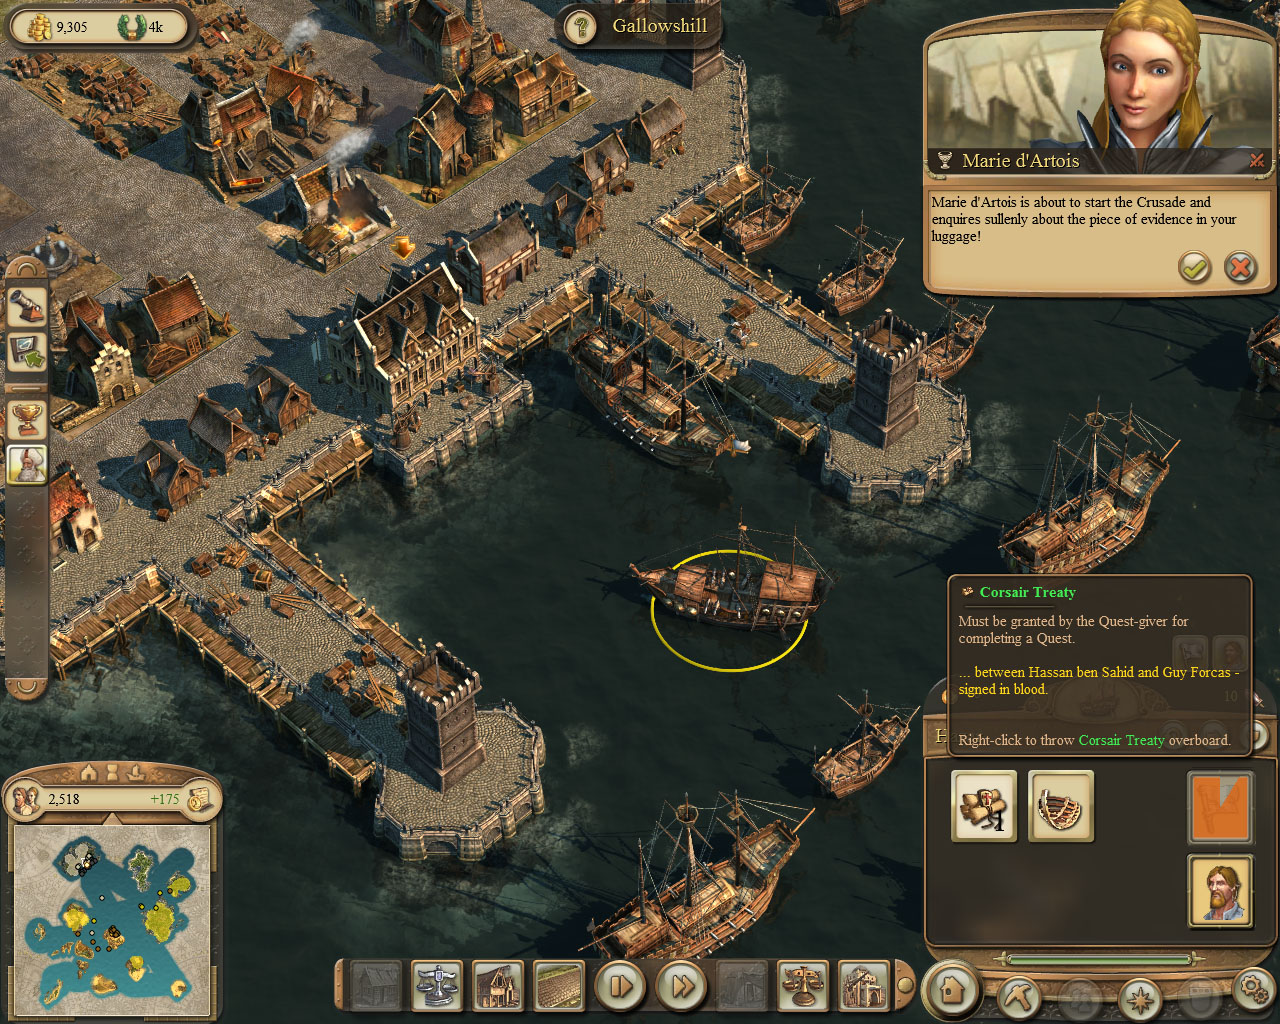 Image anno 1404 campaign chapter5 marie corsair treaty delivery anno 1404 campaign chapter5 marie corsair treaty deliveryg gumiabroncs Image collections